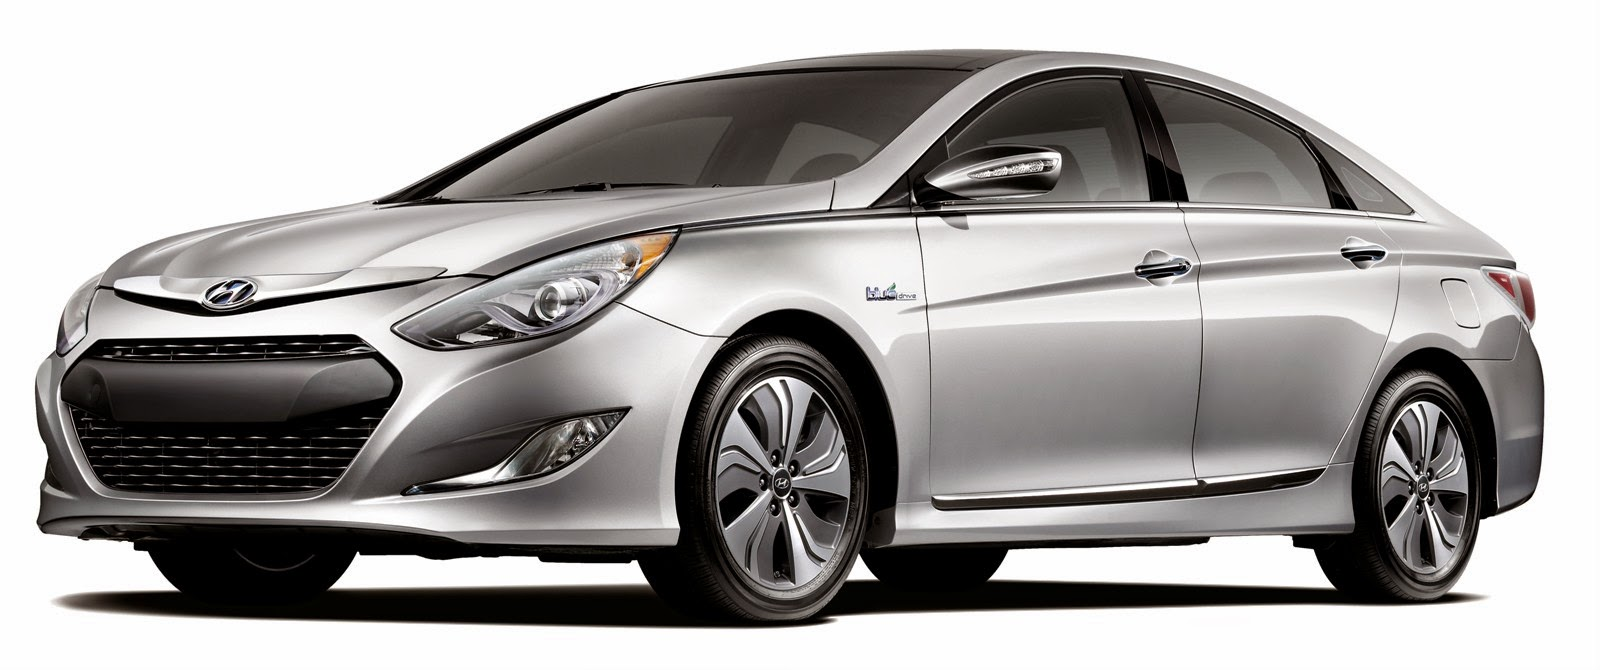 Drive in hybrid Hyundai Sonata is an eye-opener